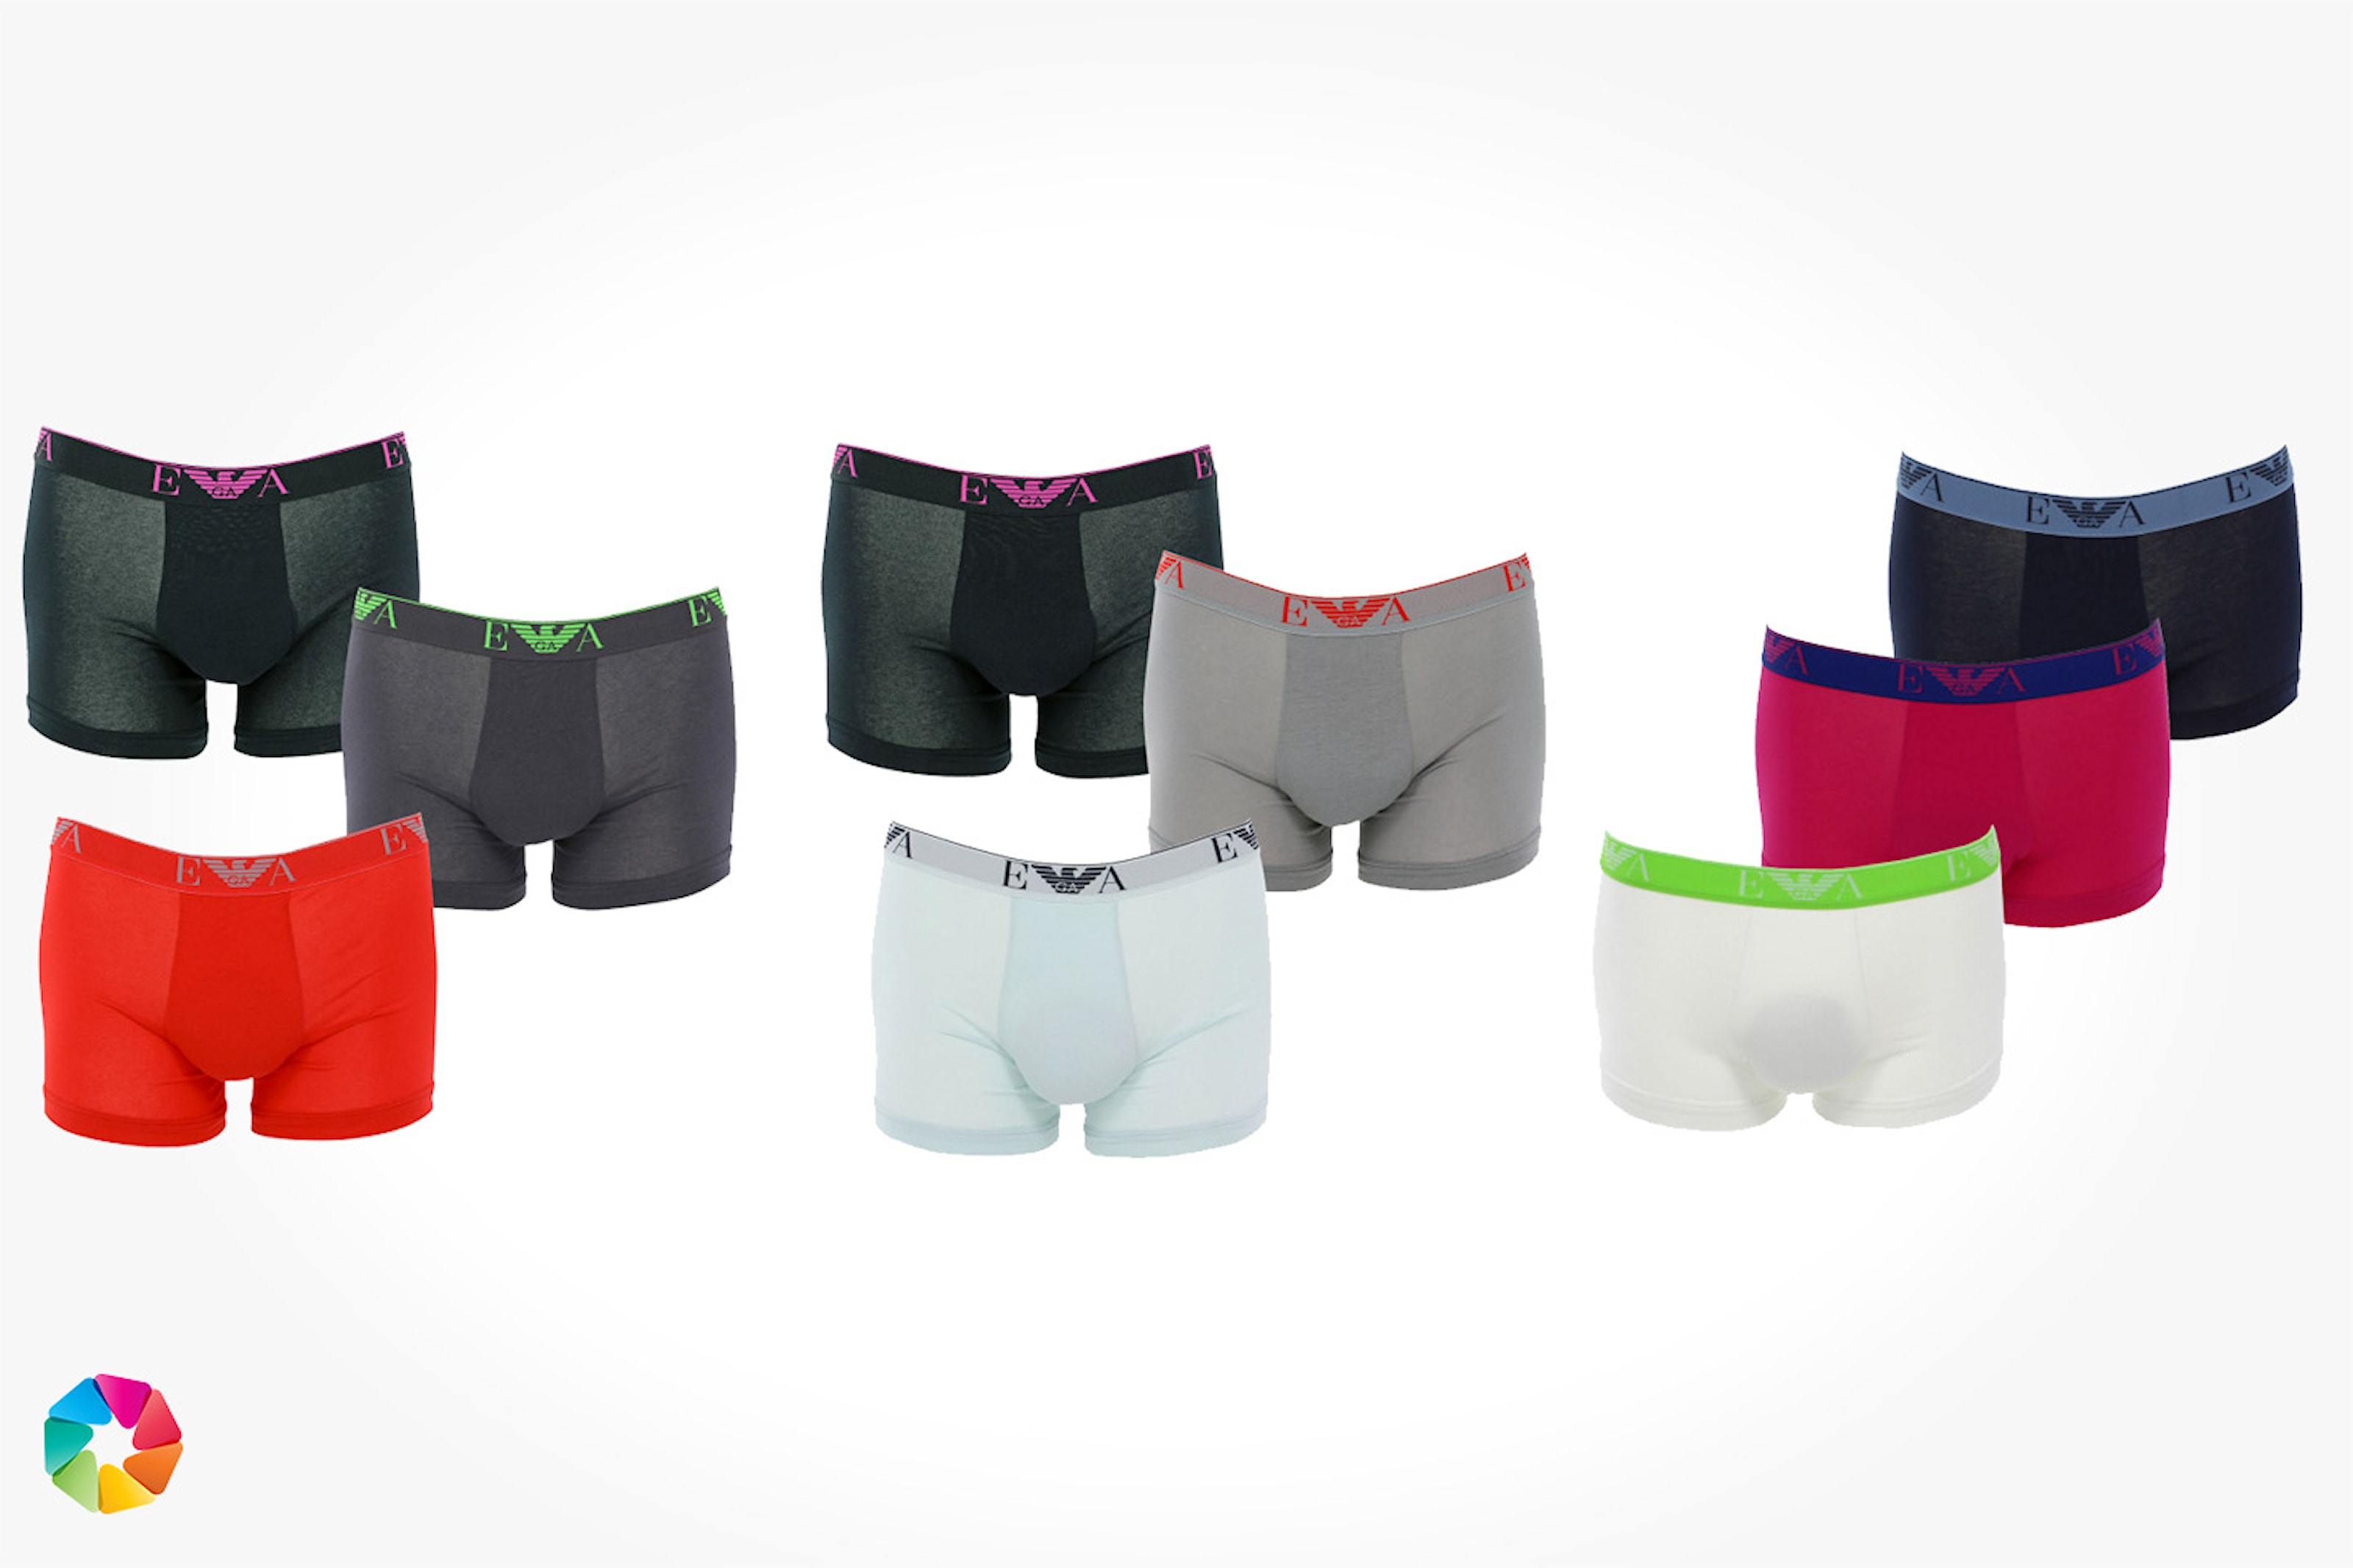 Armani boxers 3-pack